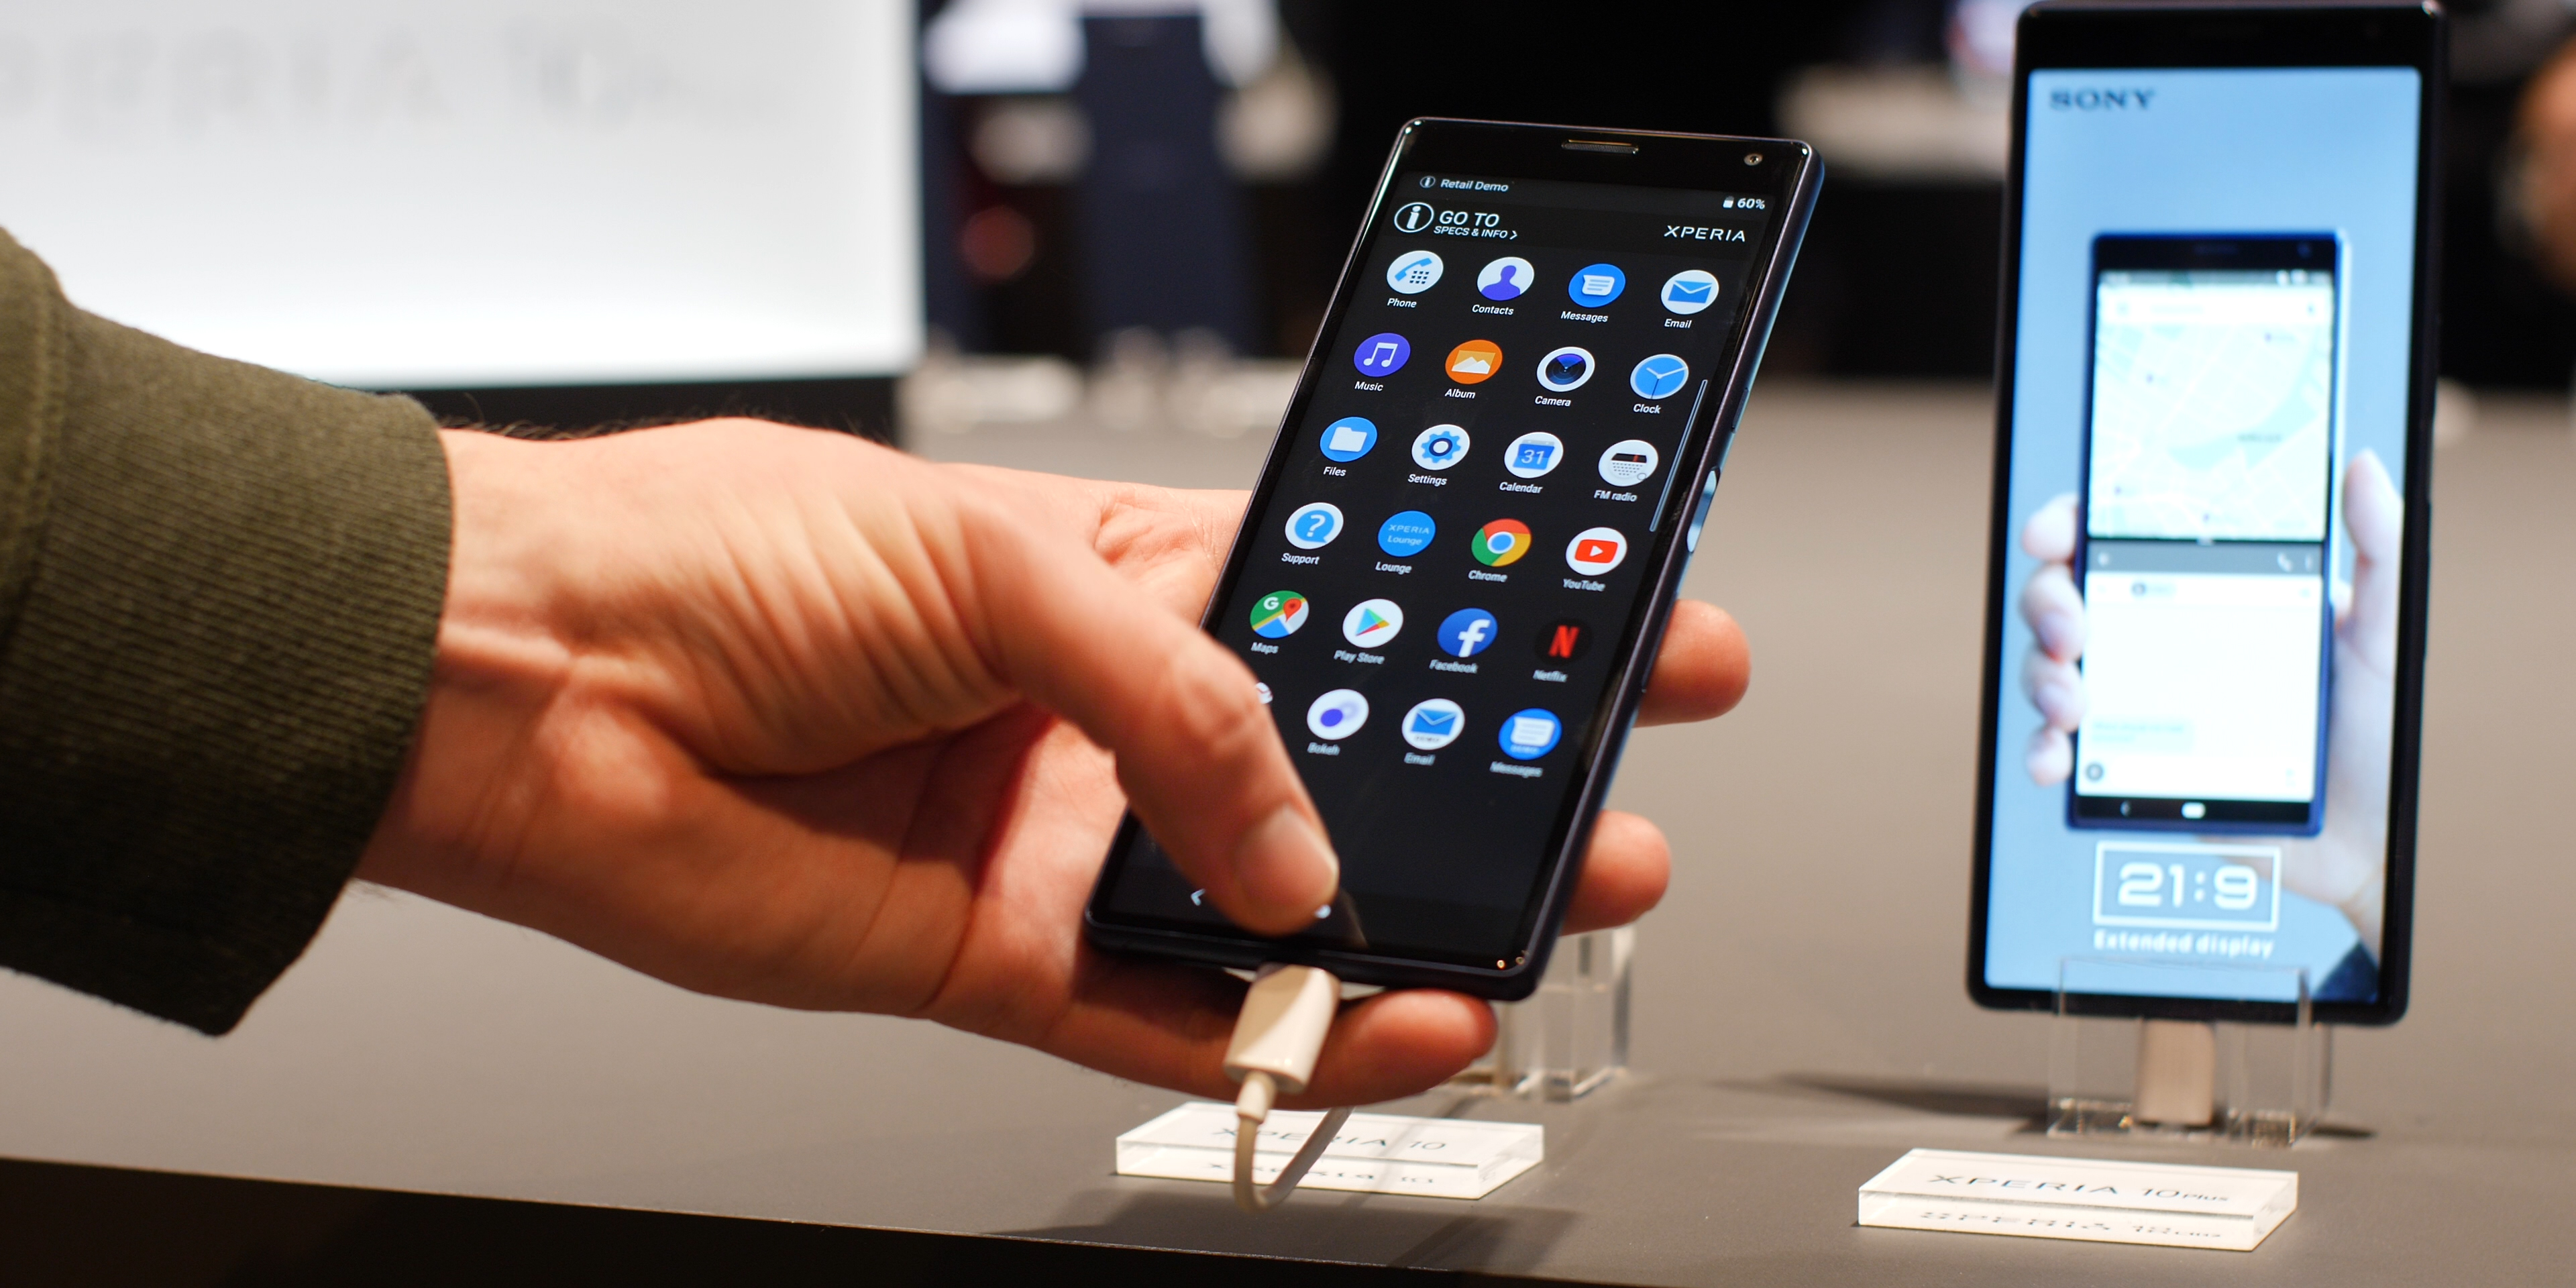 Sony Xperia 10 software and performance